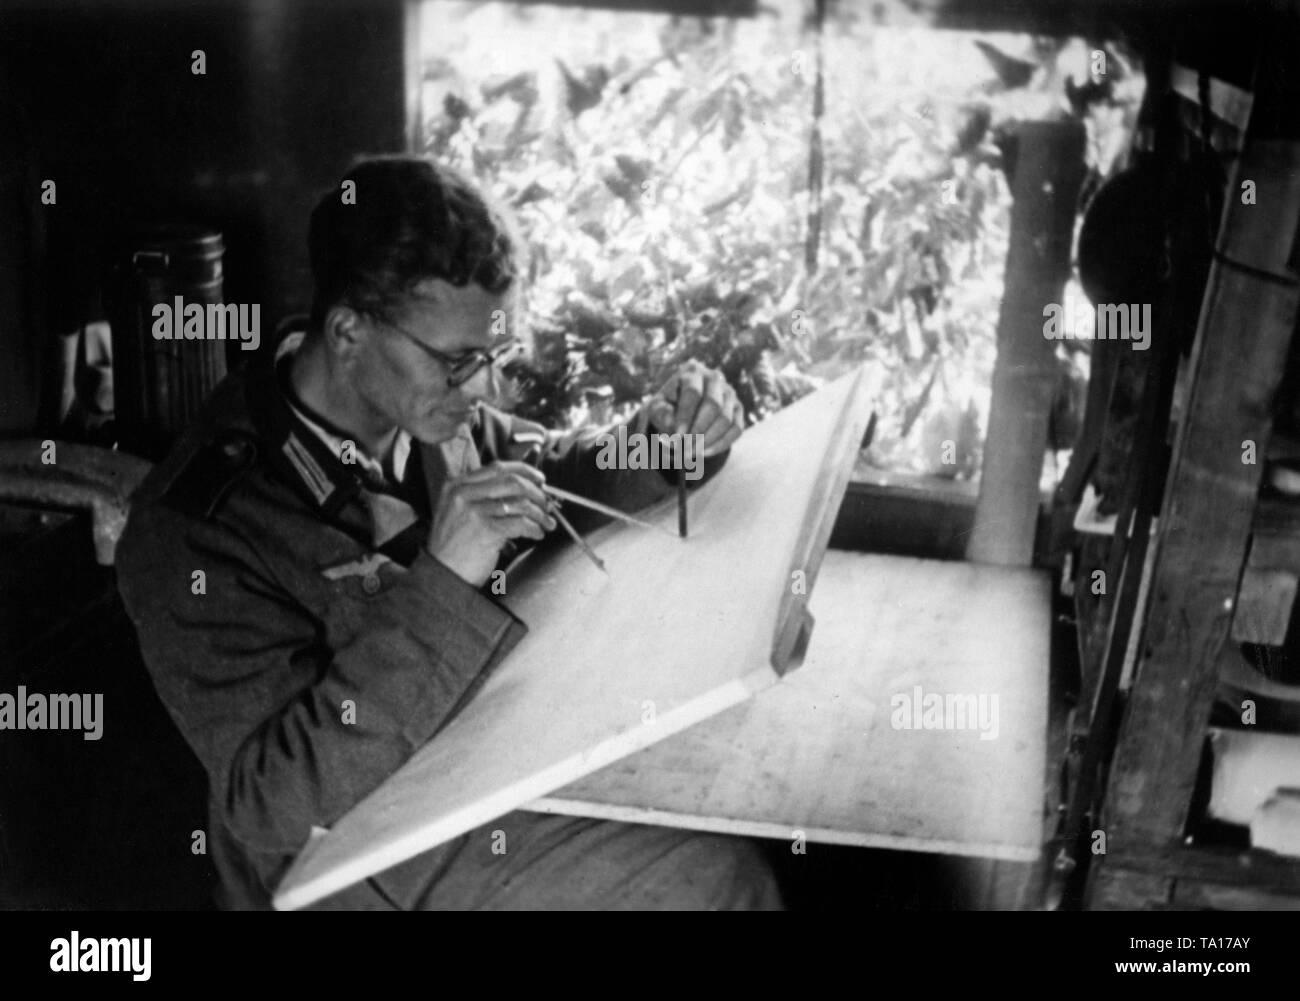 A soldier of a Korpskartenstelle (Corps Map Unit) draws new scout results into existing maps. Eastern Front, August 1941. Photo: war reporter Utecht. - Stock Image